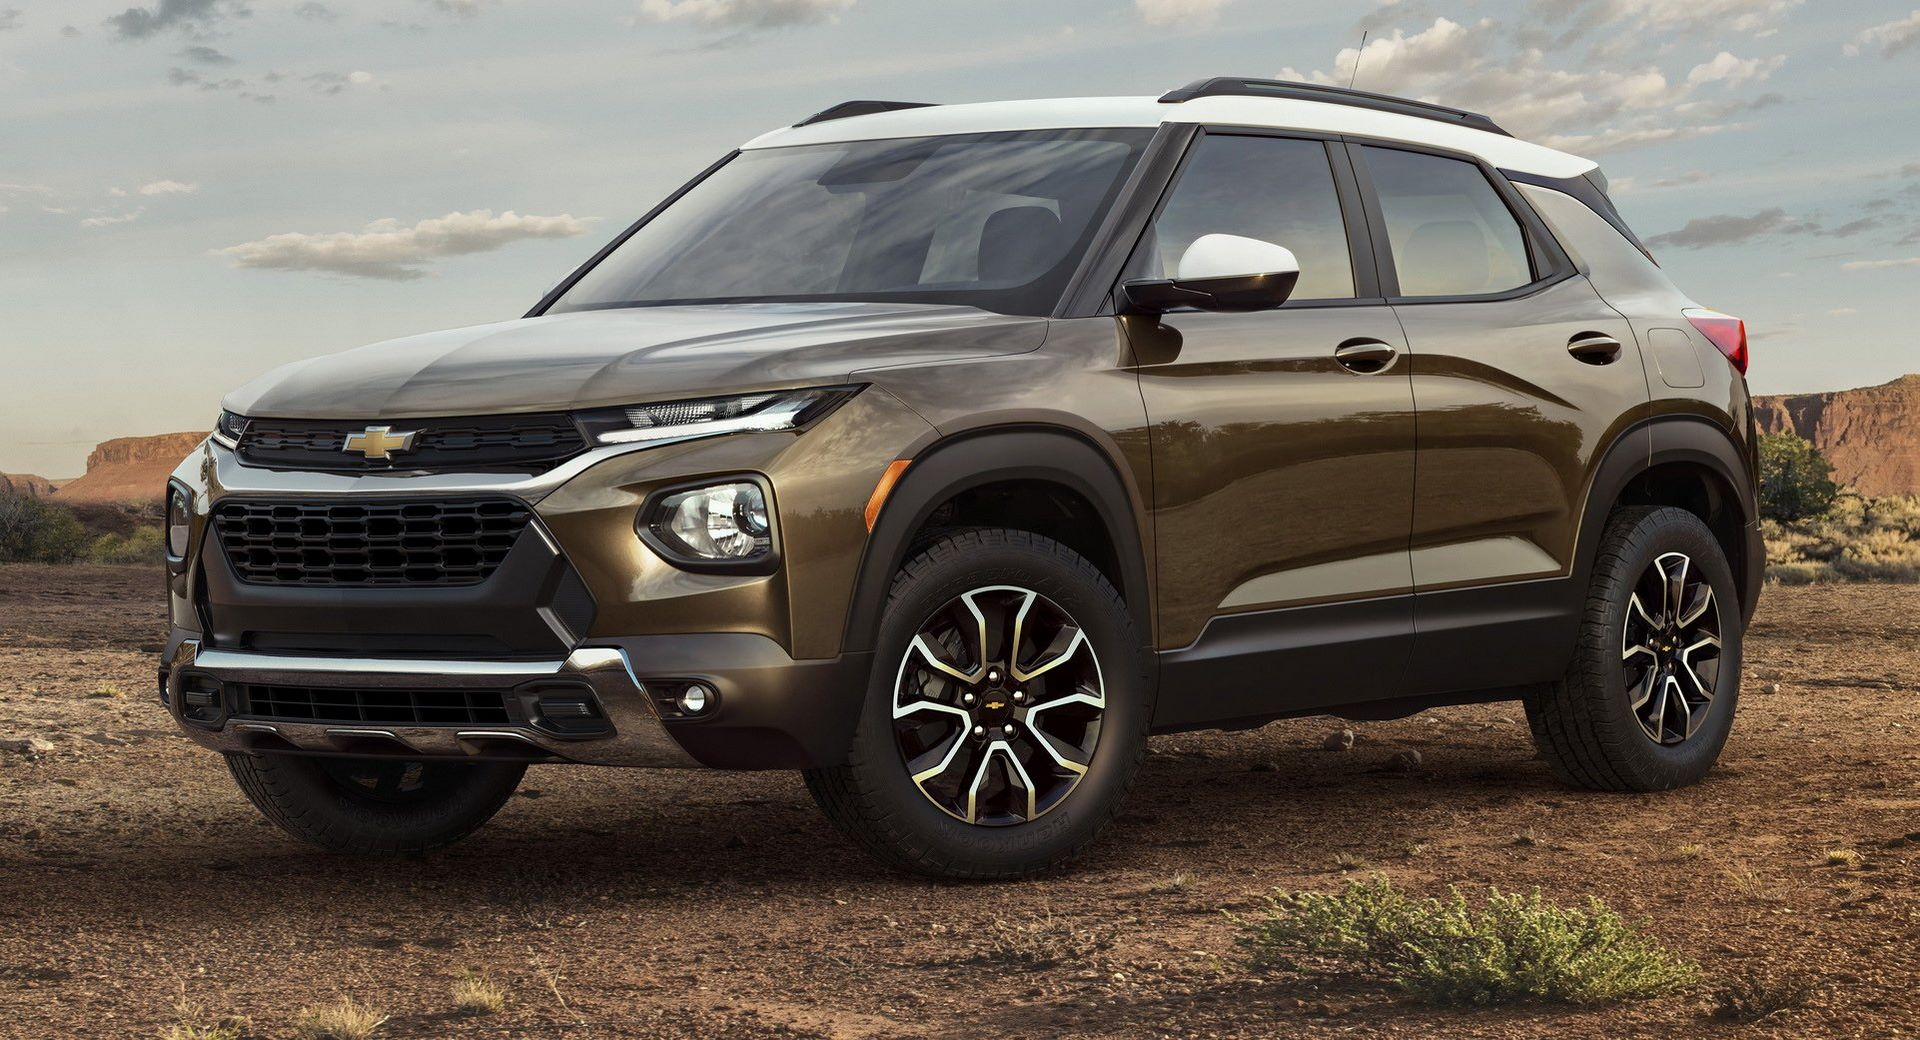 Chevrolet-Trailblazer-2021-14